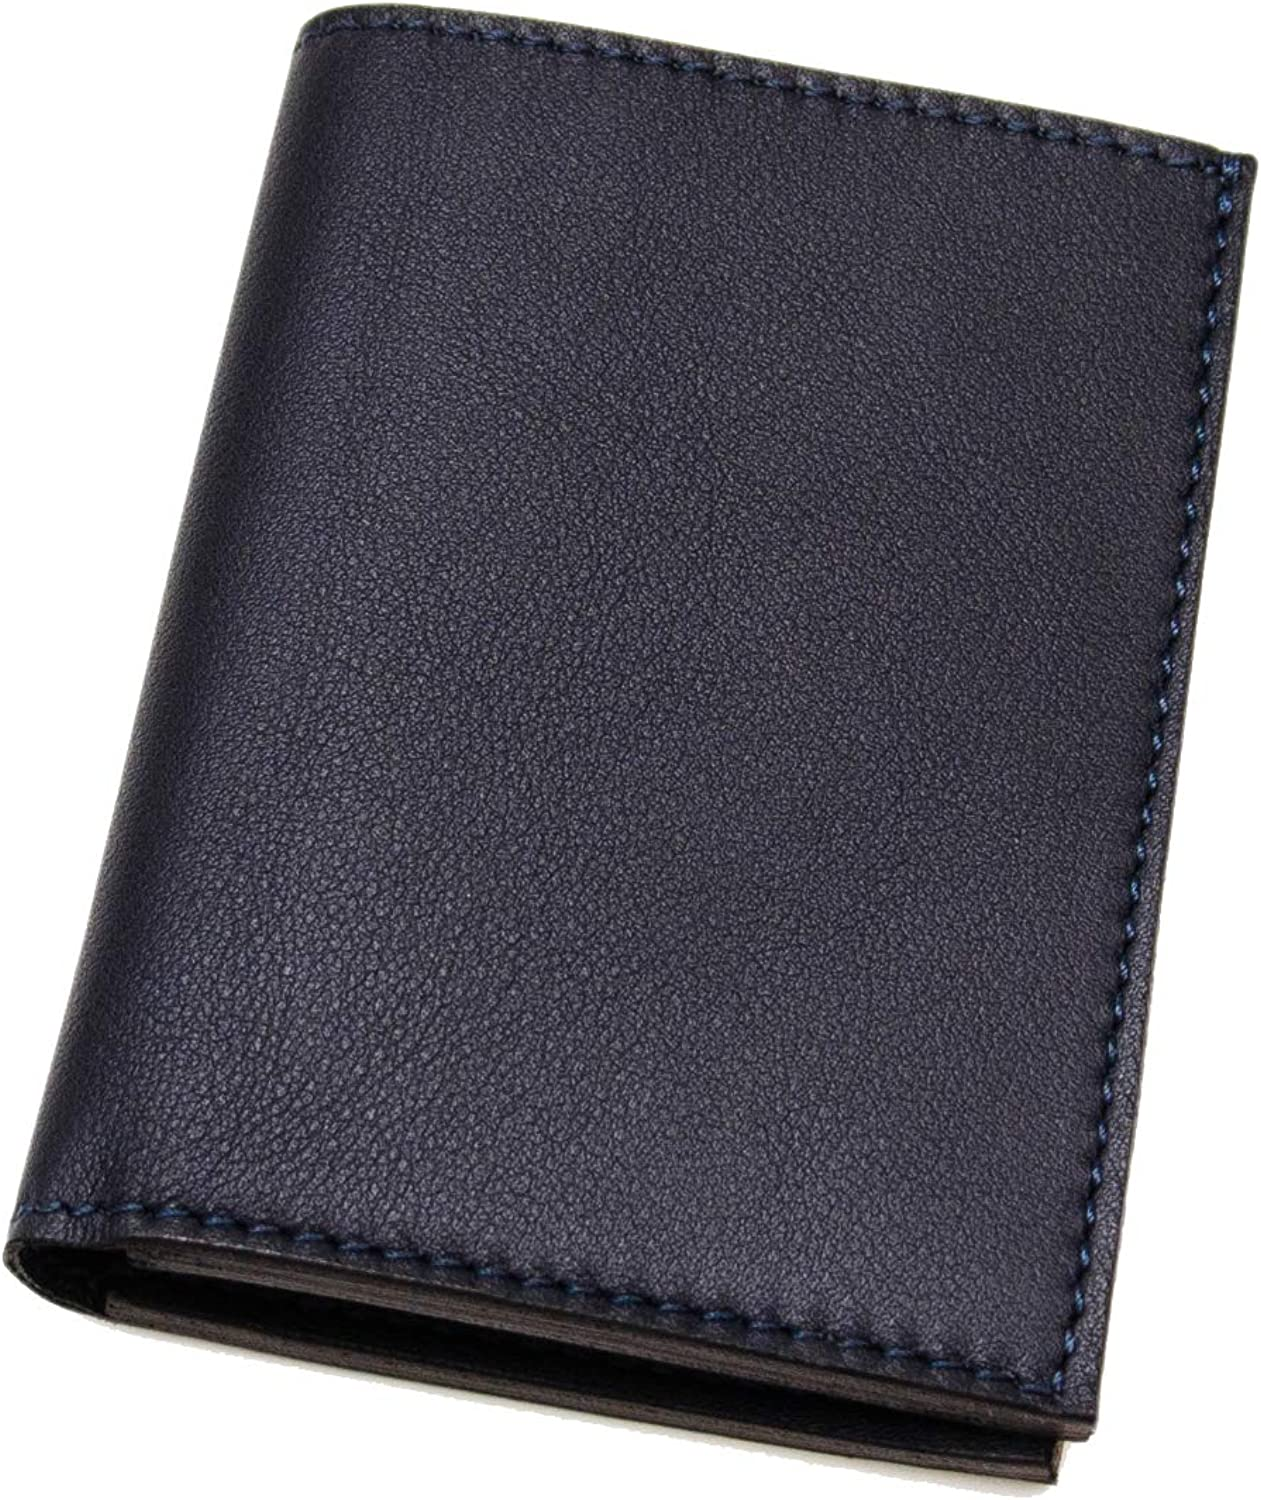 Cheap mail order specialty store Maruse Italian Leather Wallet for Minimali Slim Bills Cards and Super sale